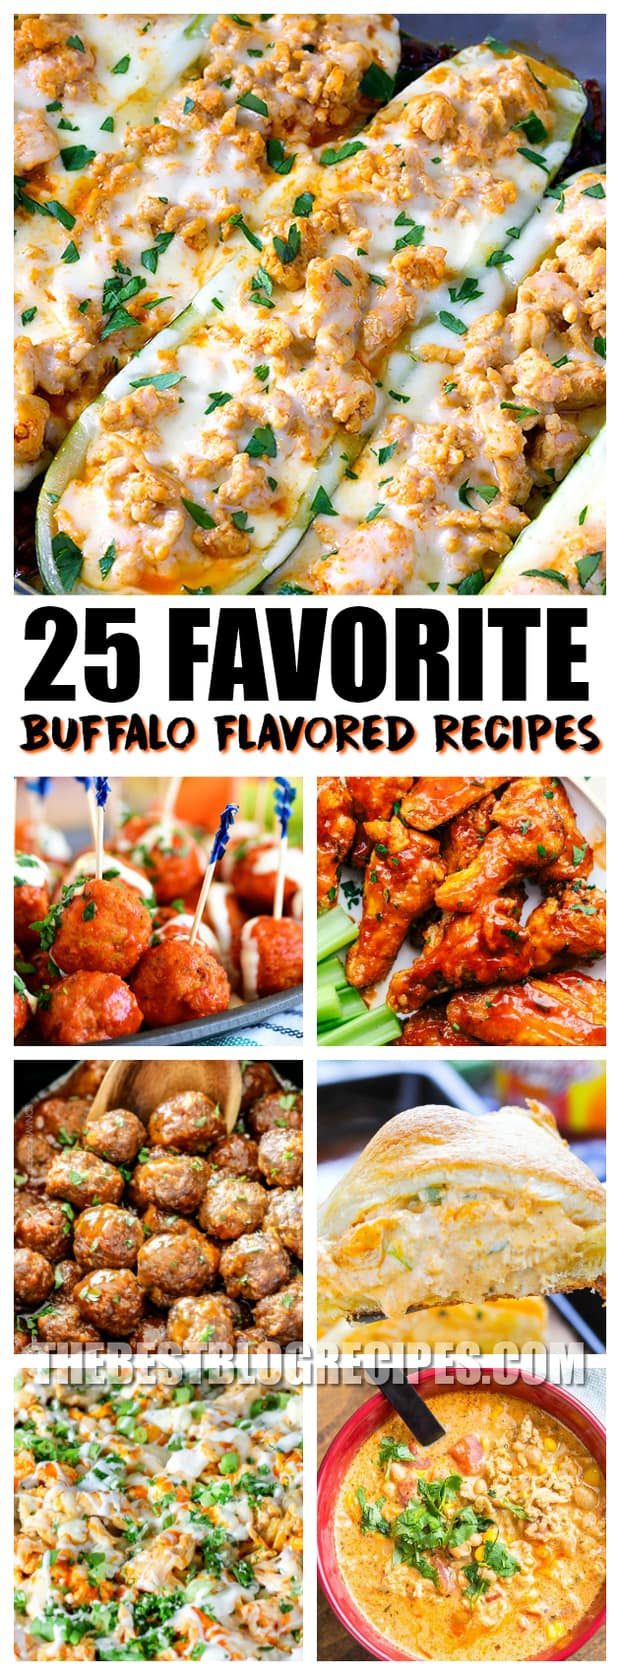 25 Favorite Buffalo Flavored Recipes